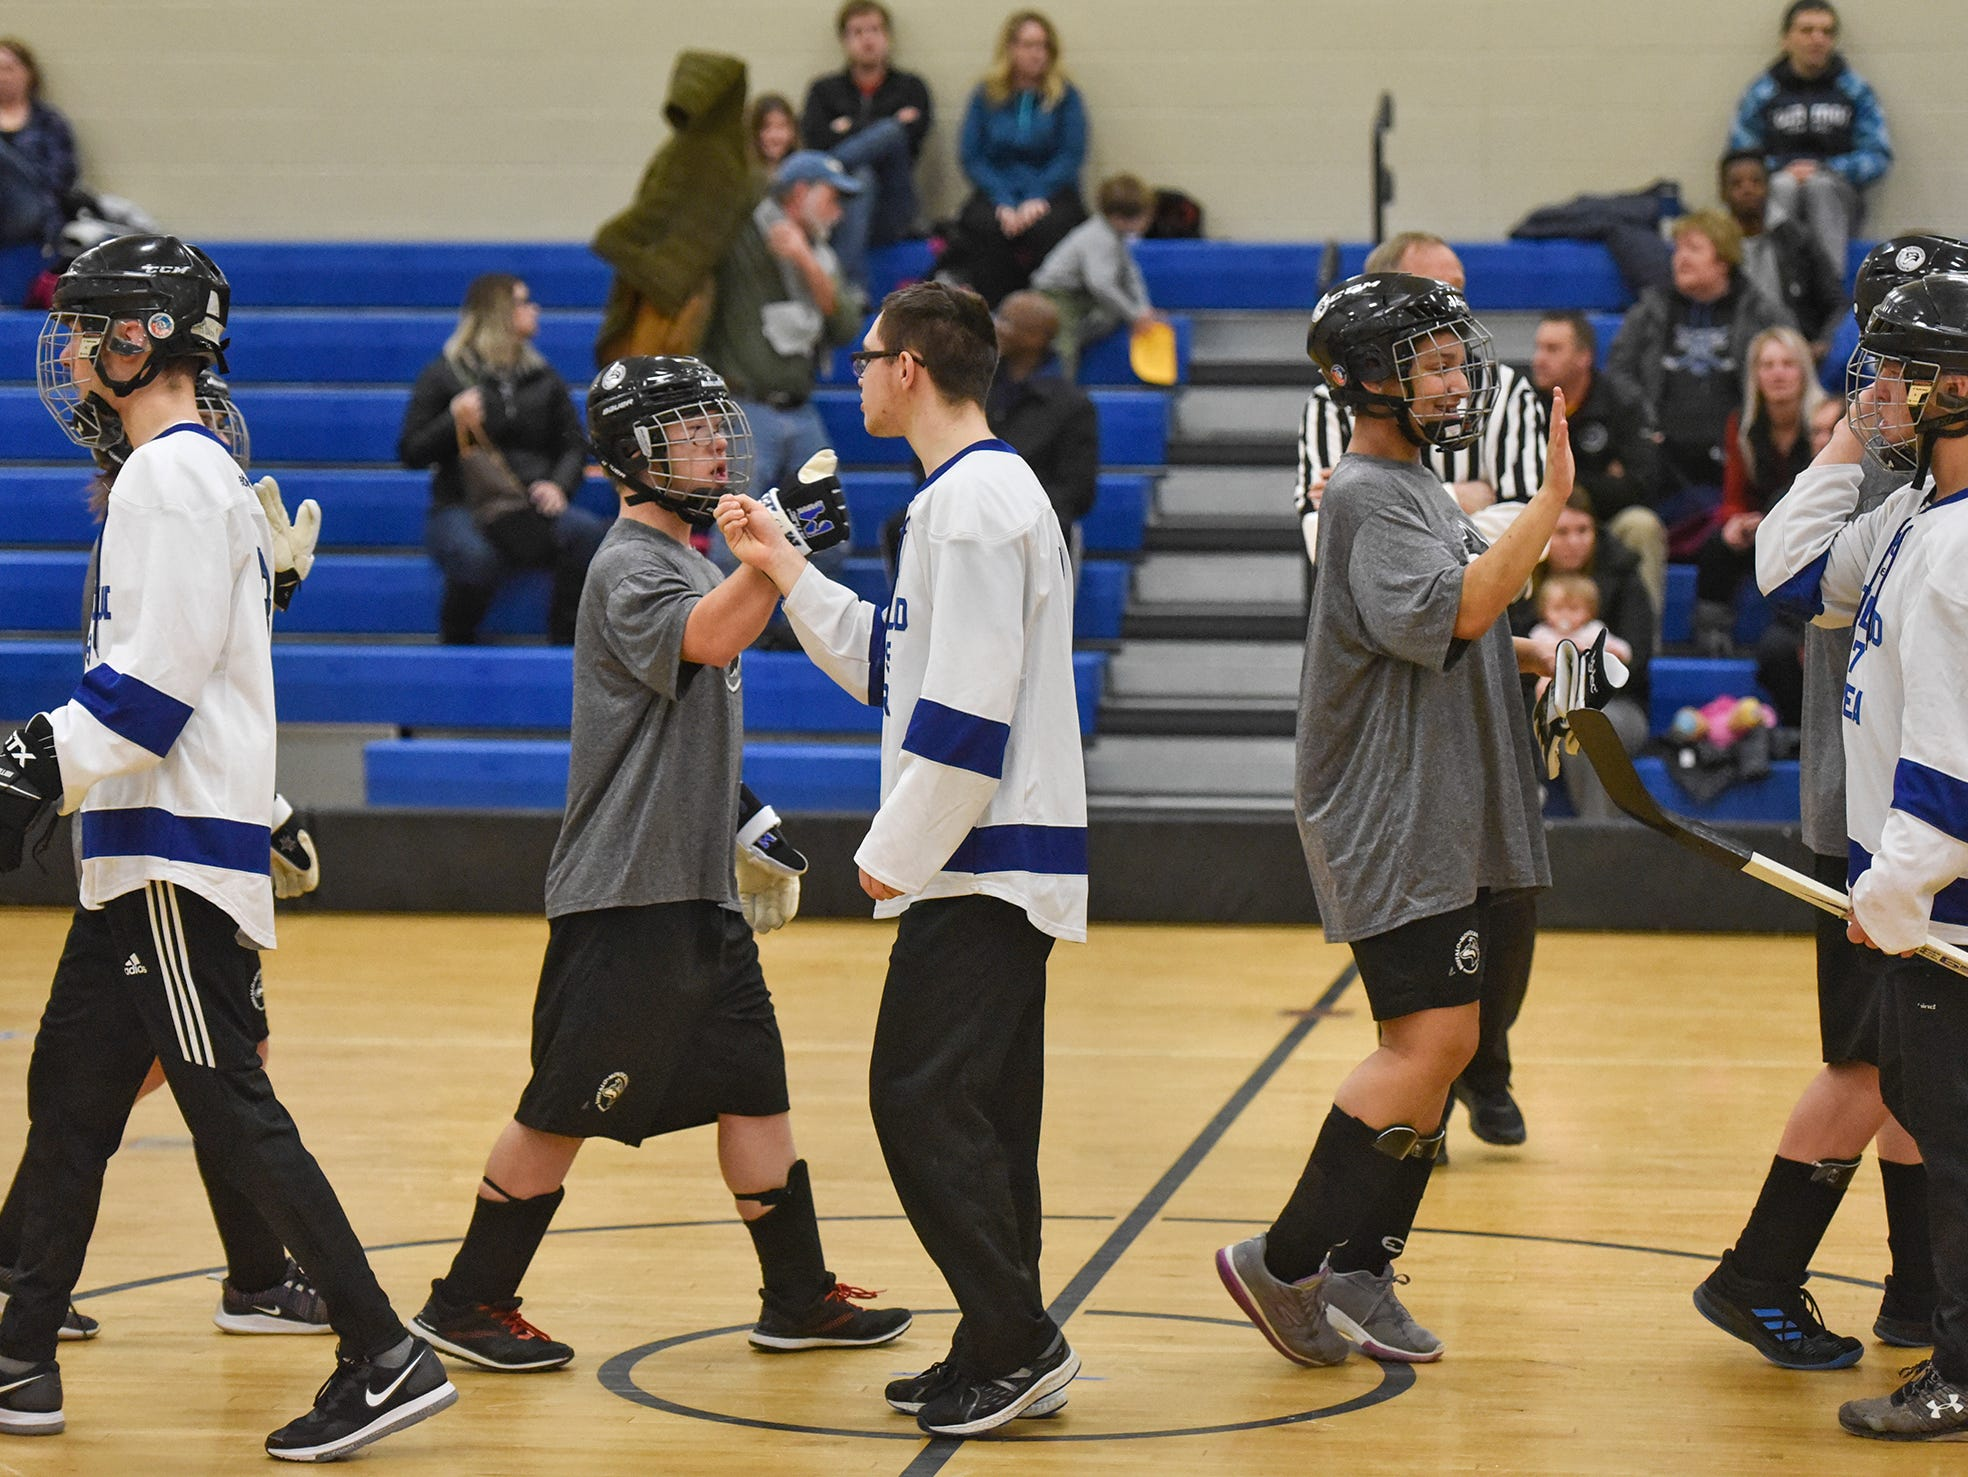 Players congratulate each other following the Wednesday, Feb. 6, game at Kennedy Community School in St. Joseph.